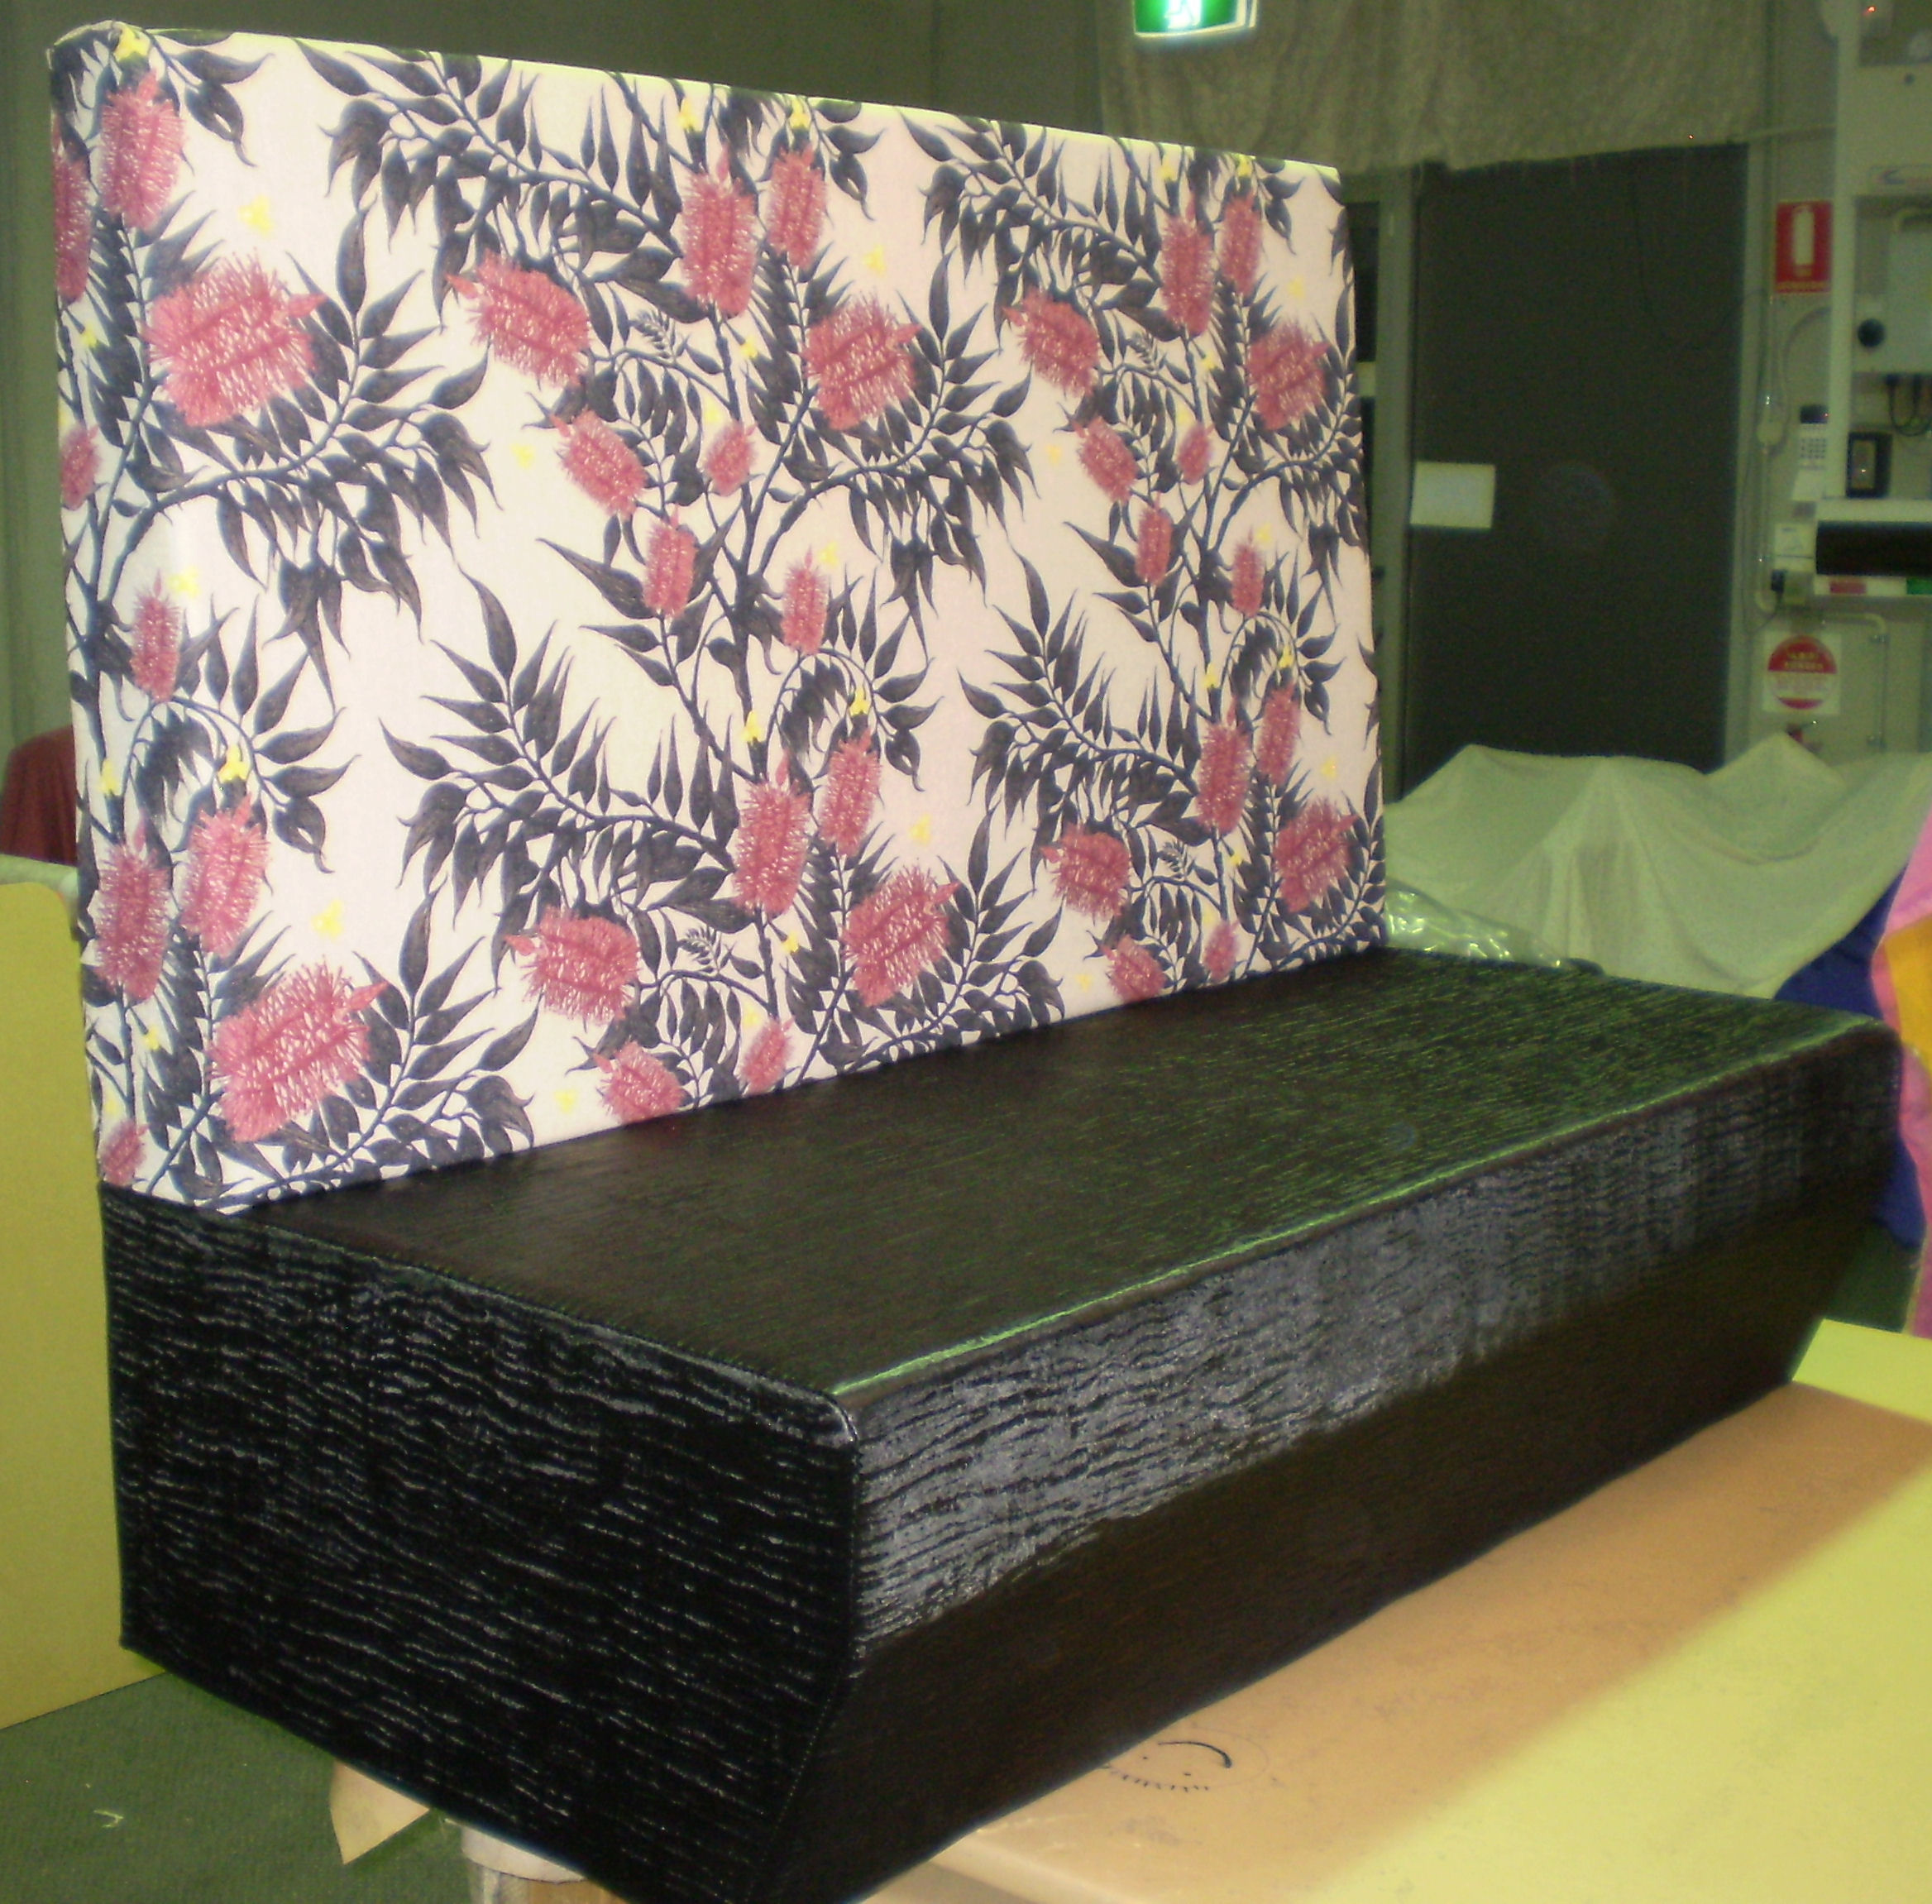 The Block Banquette Seat Looked Fantastic! We Can Design